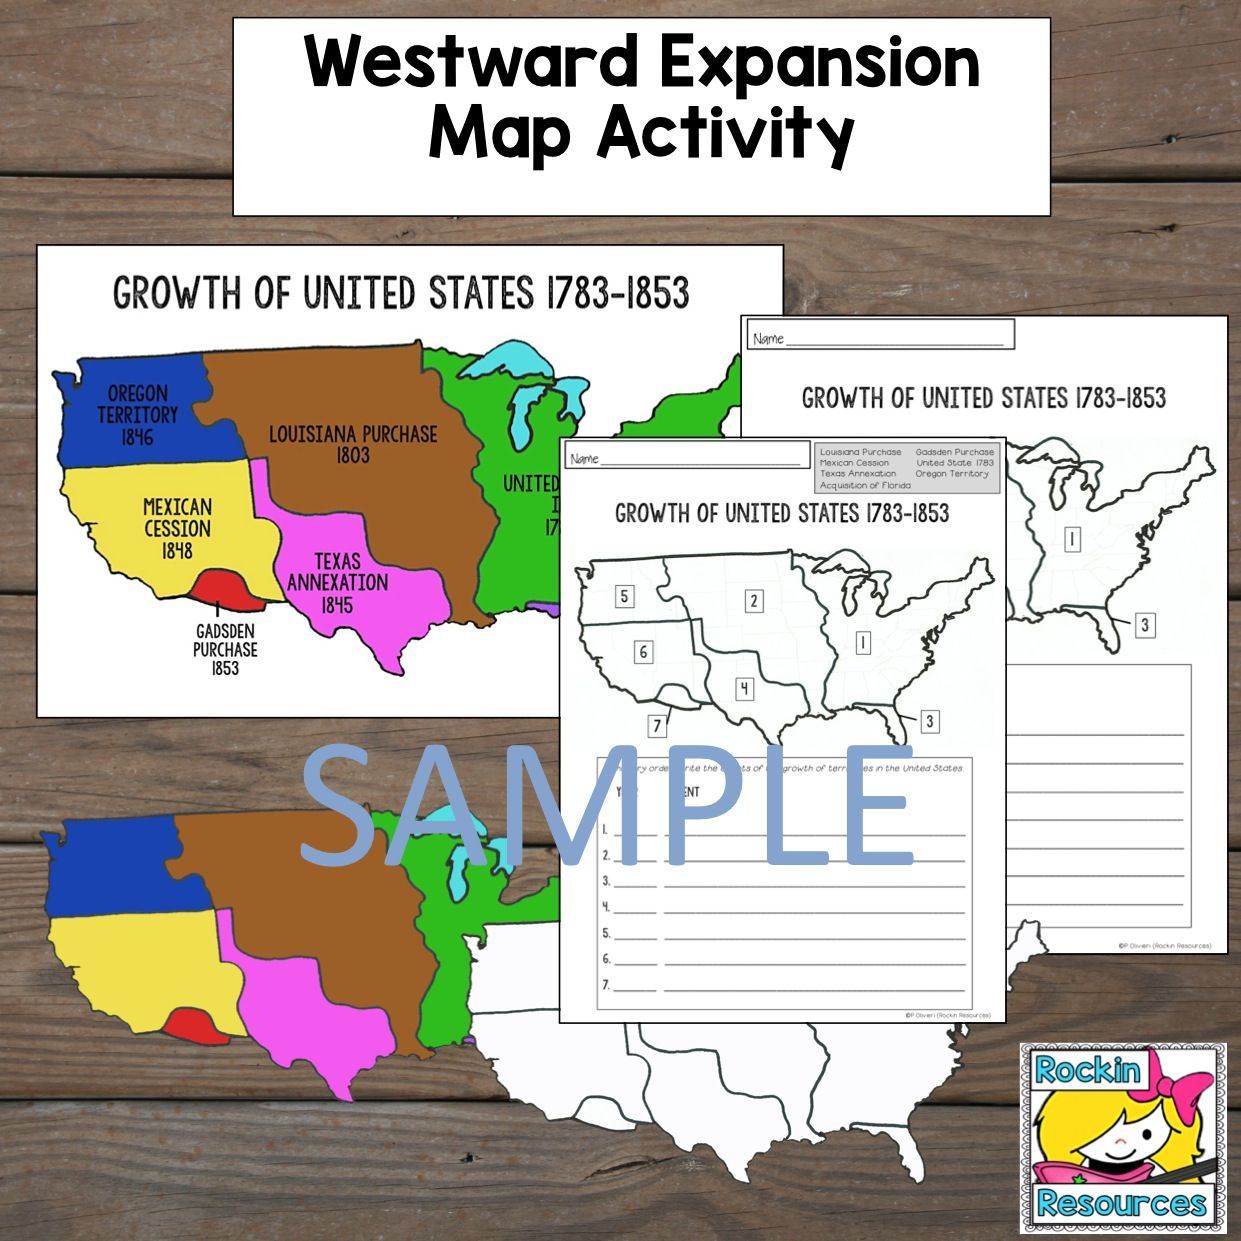 Westward Expansion Map Activity